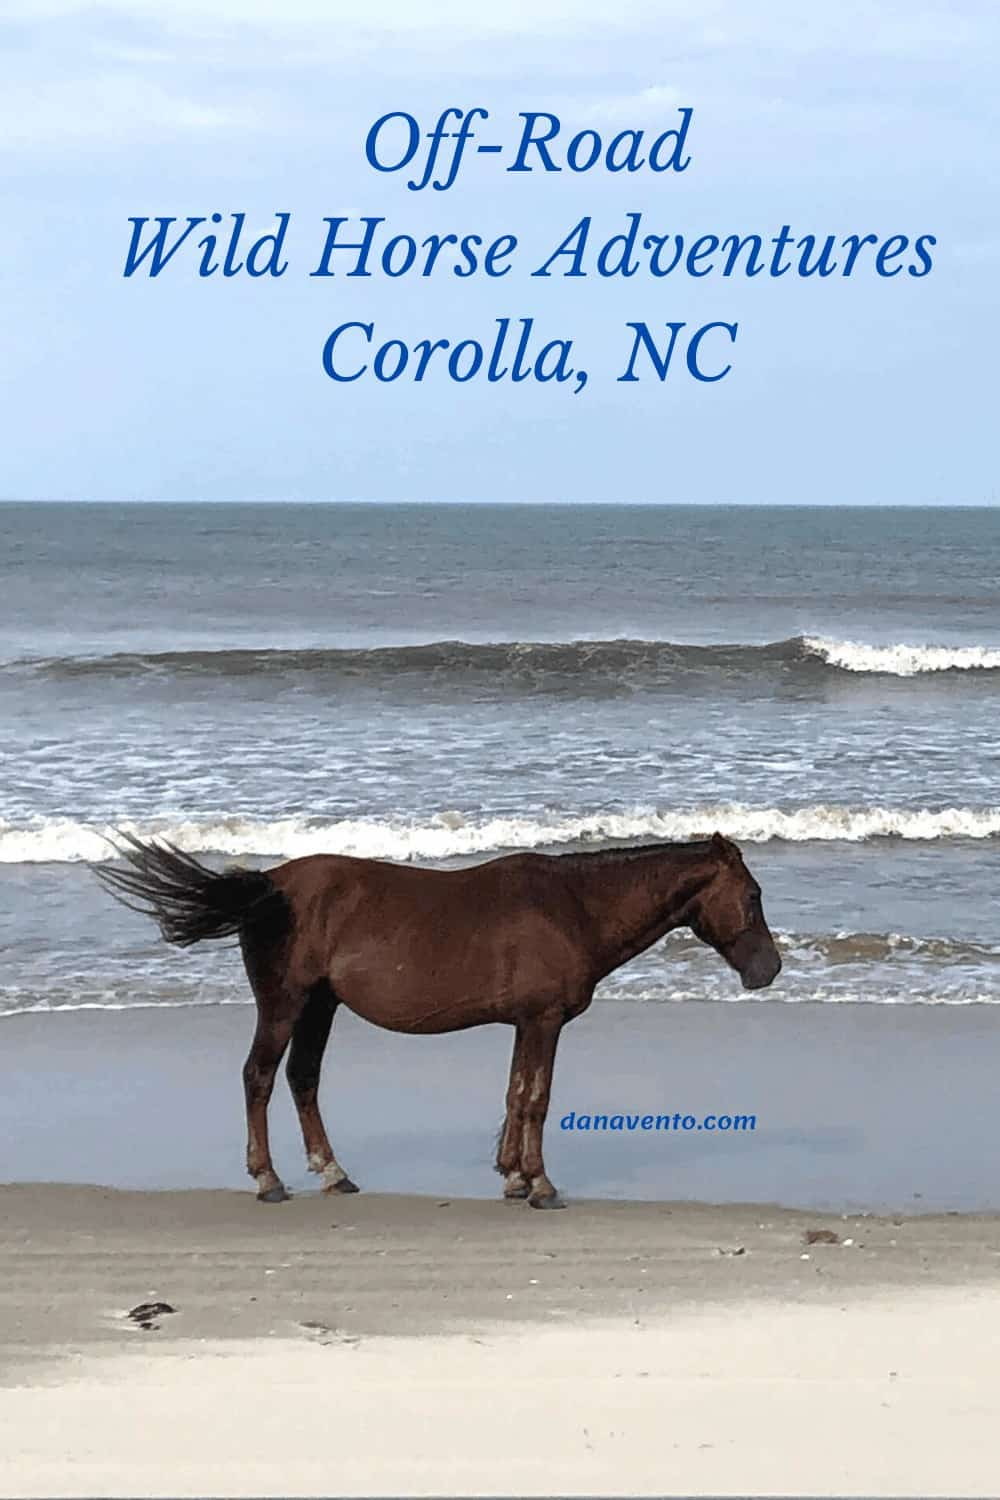 Wild Colonial Mustang by shoreline in Carova Beach, NC